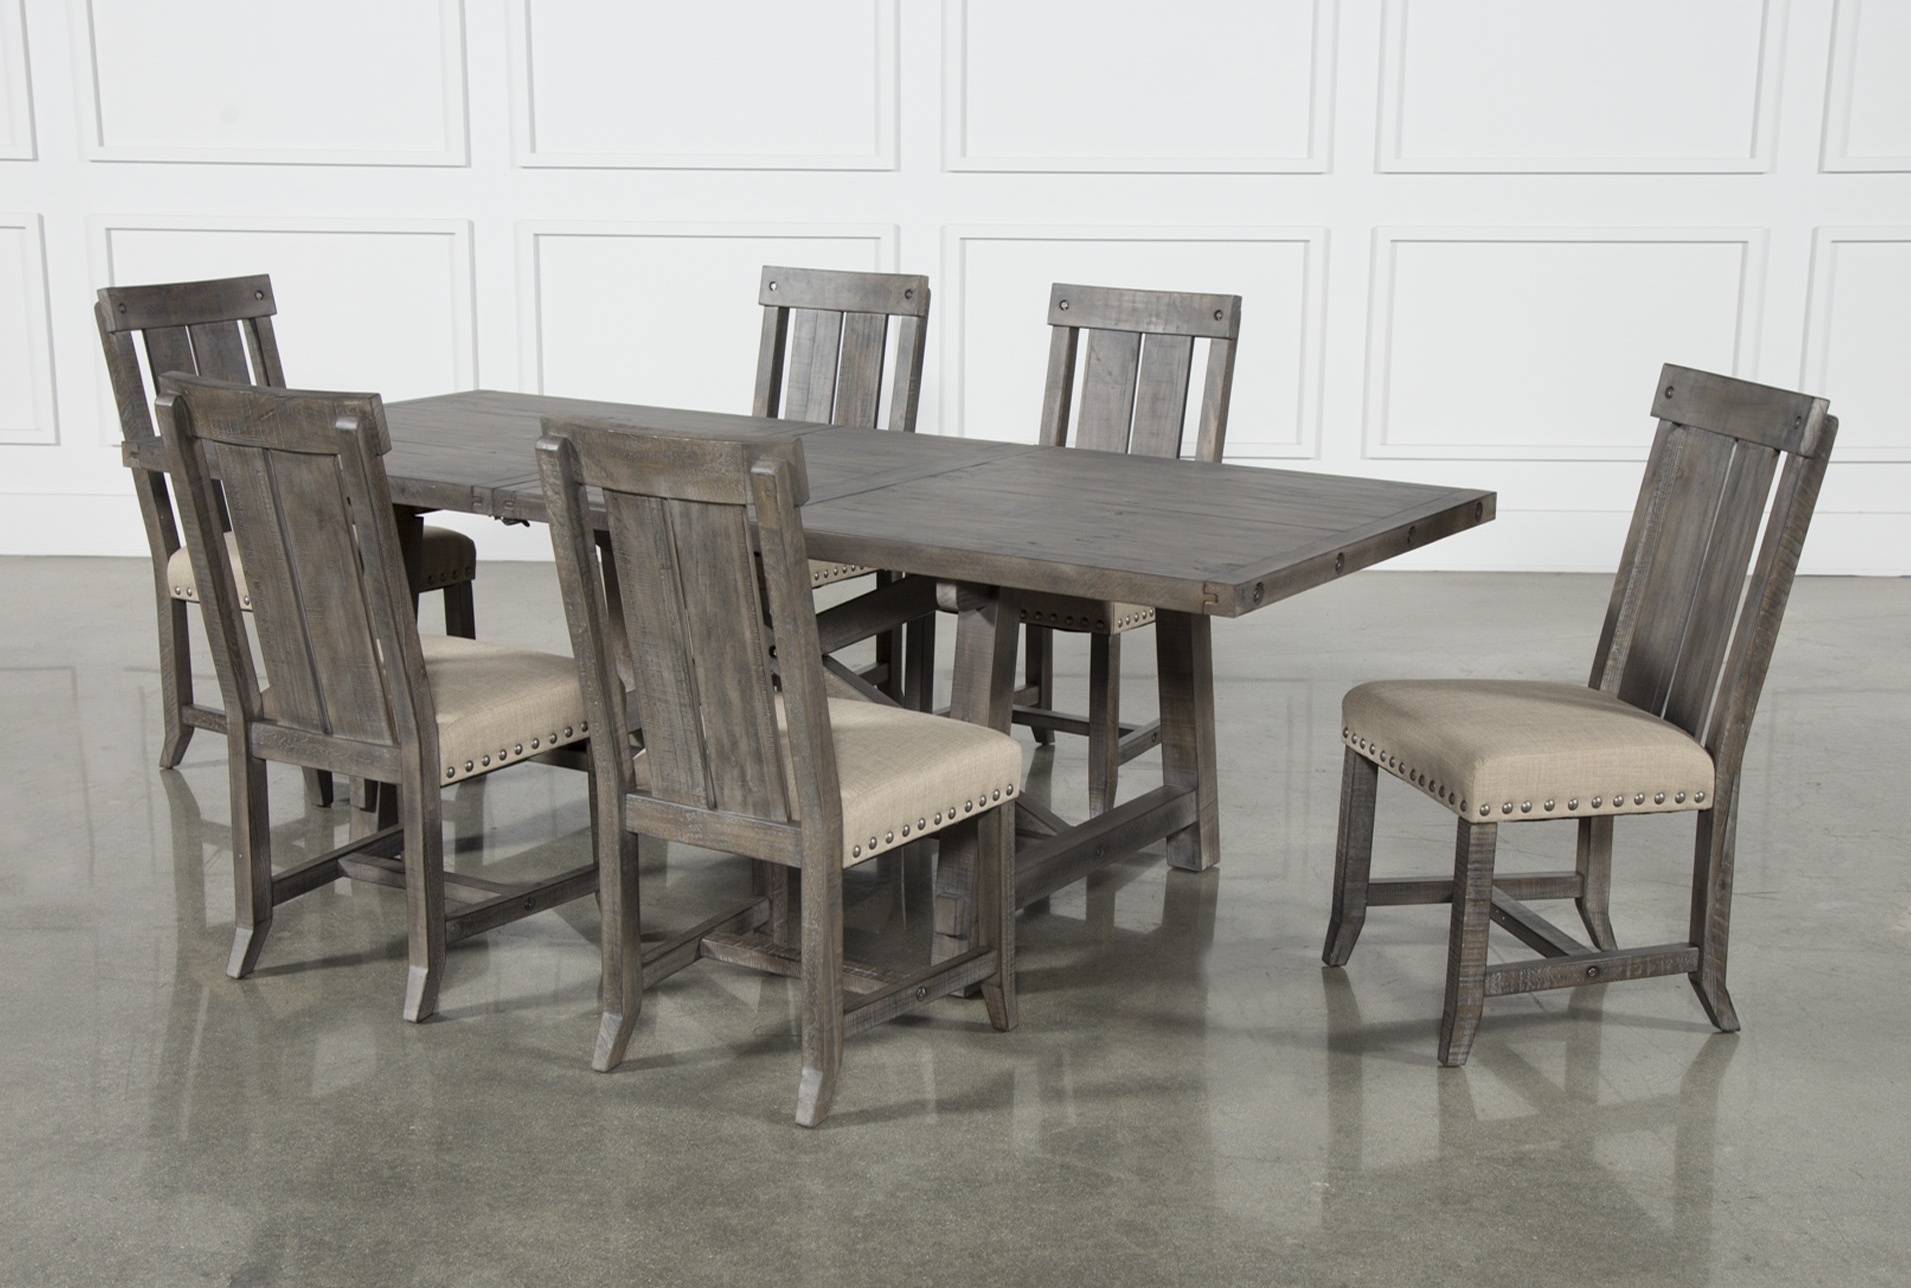 Jaxon Grey 7 Piece Rectangle Extension Dining Set W/wood Chairs With Regard To Most Recently Released Jaxon Grey Rectangle Extension Dining Tables (View 4 of 25)